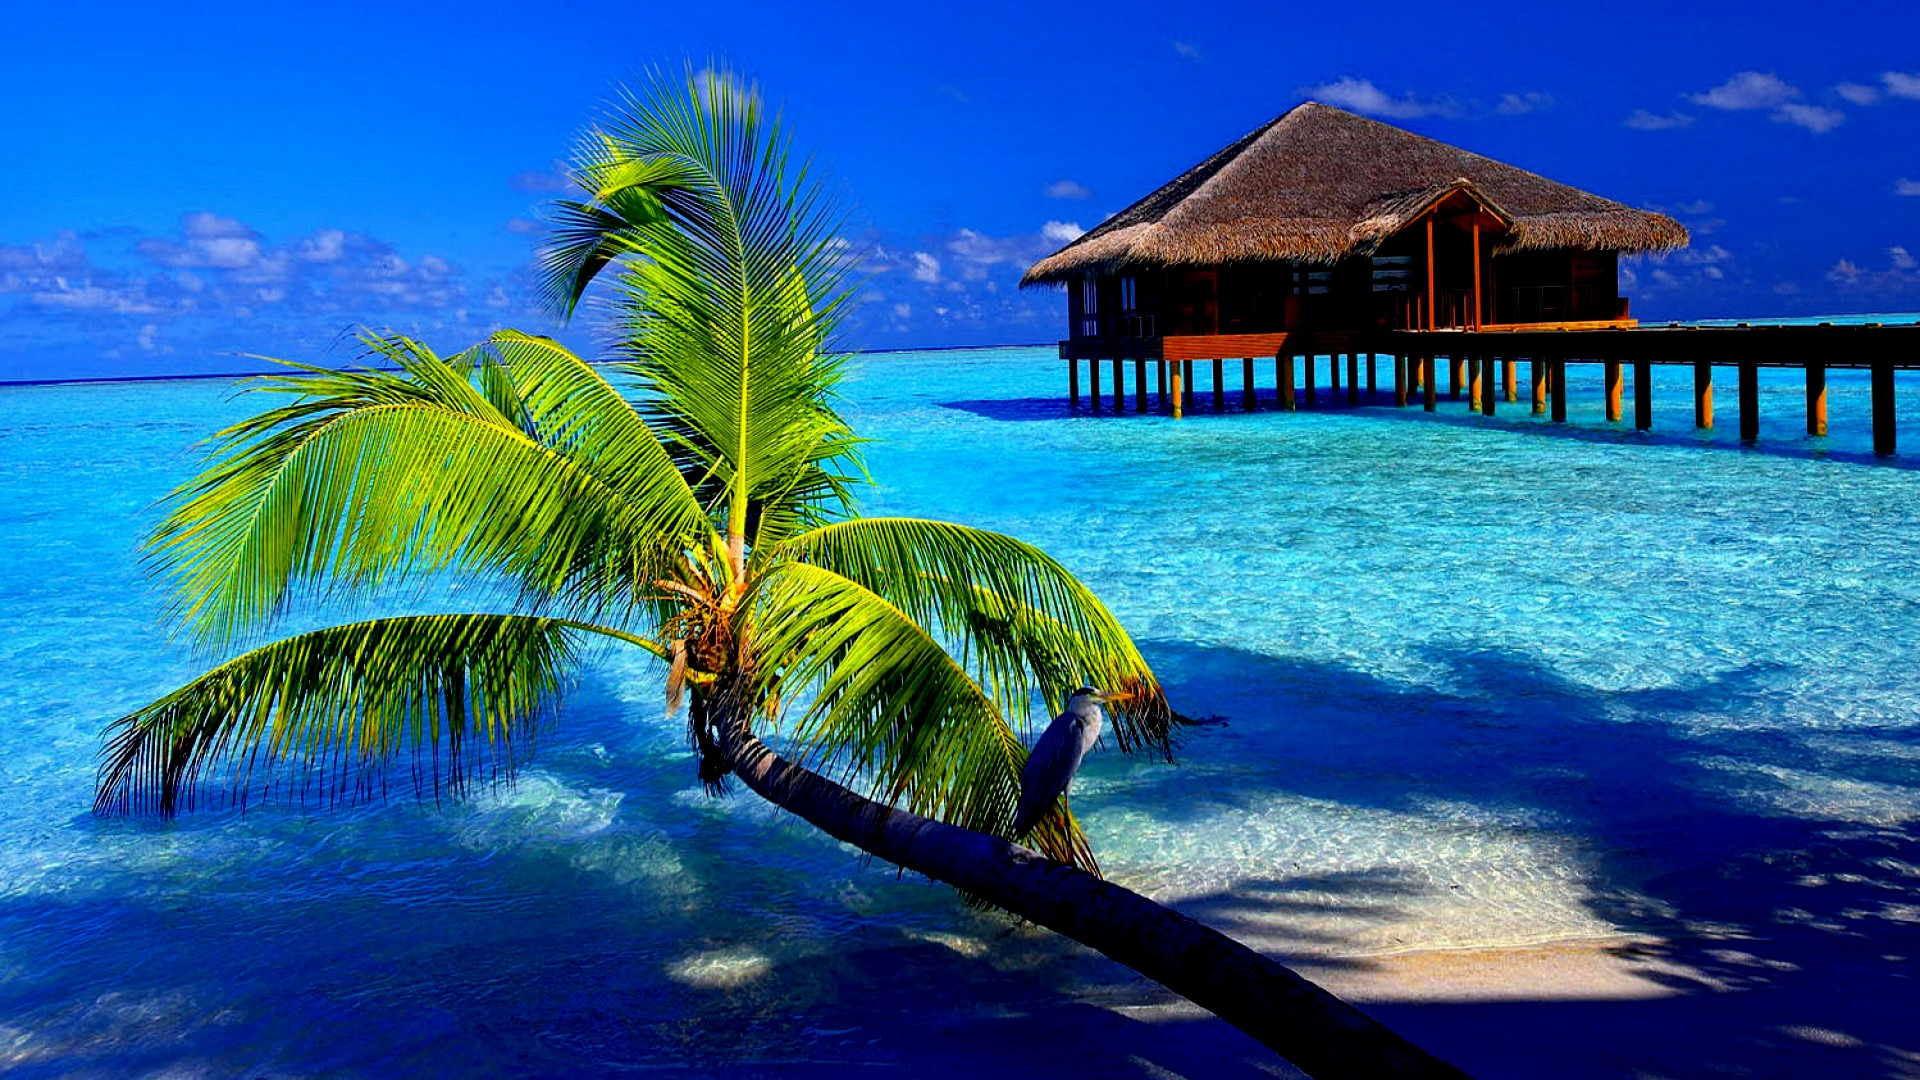 Related image with Tropical Beach Wallpaper Hd Wallpapers 1920x1080